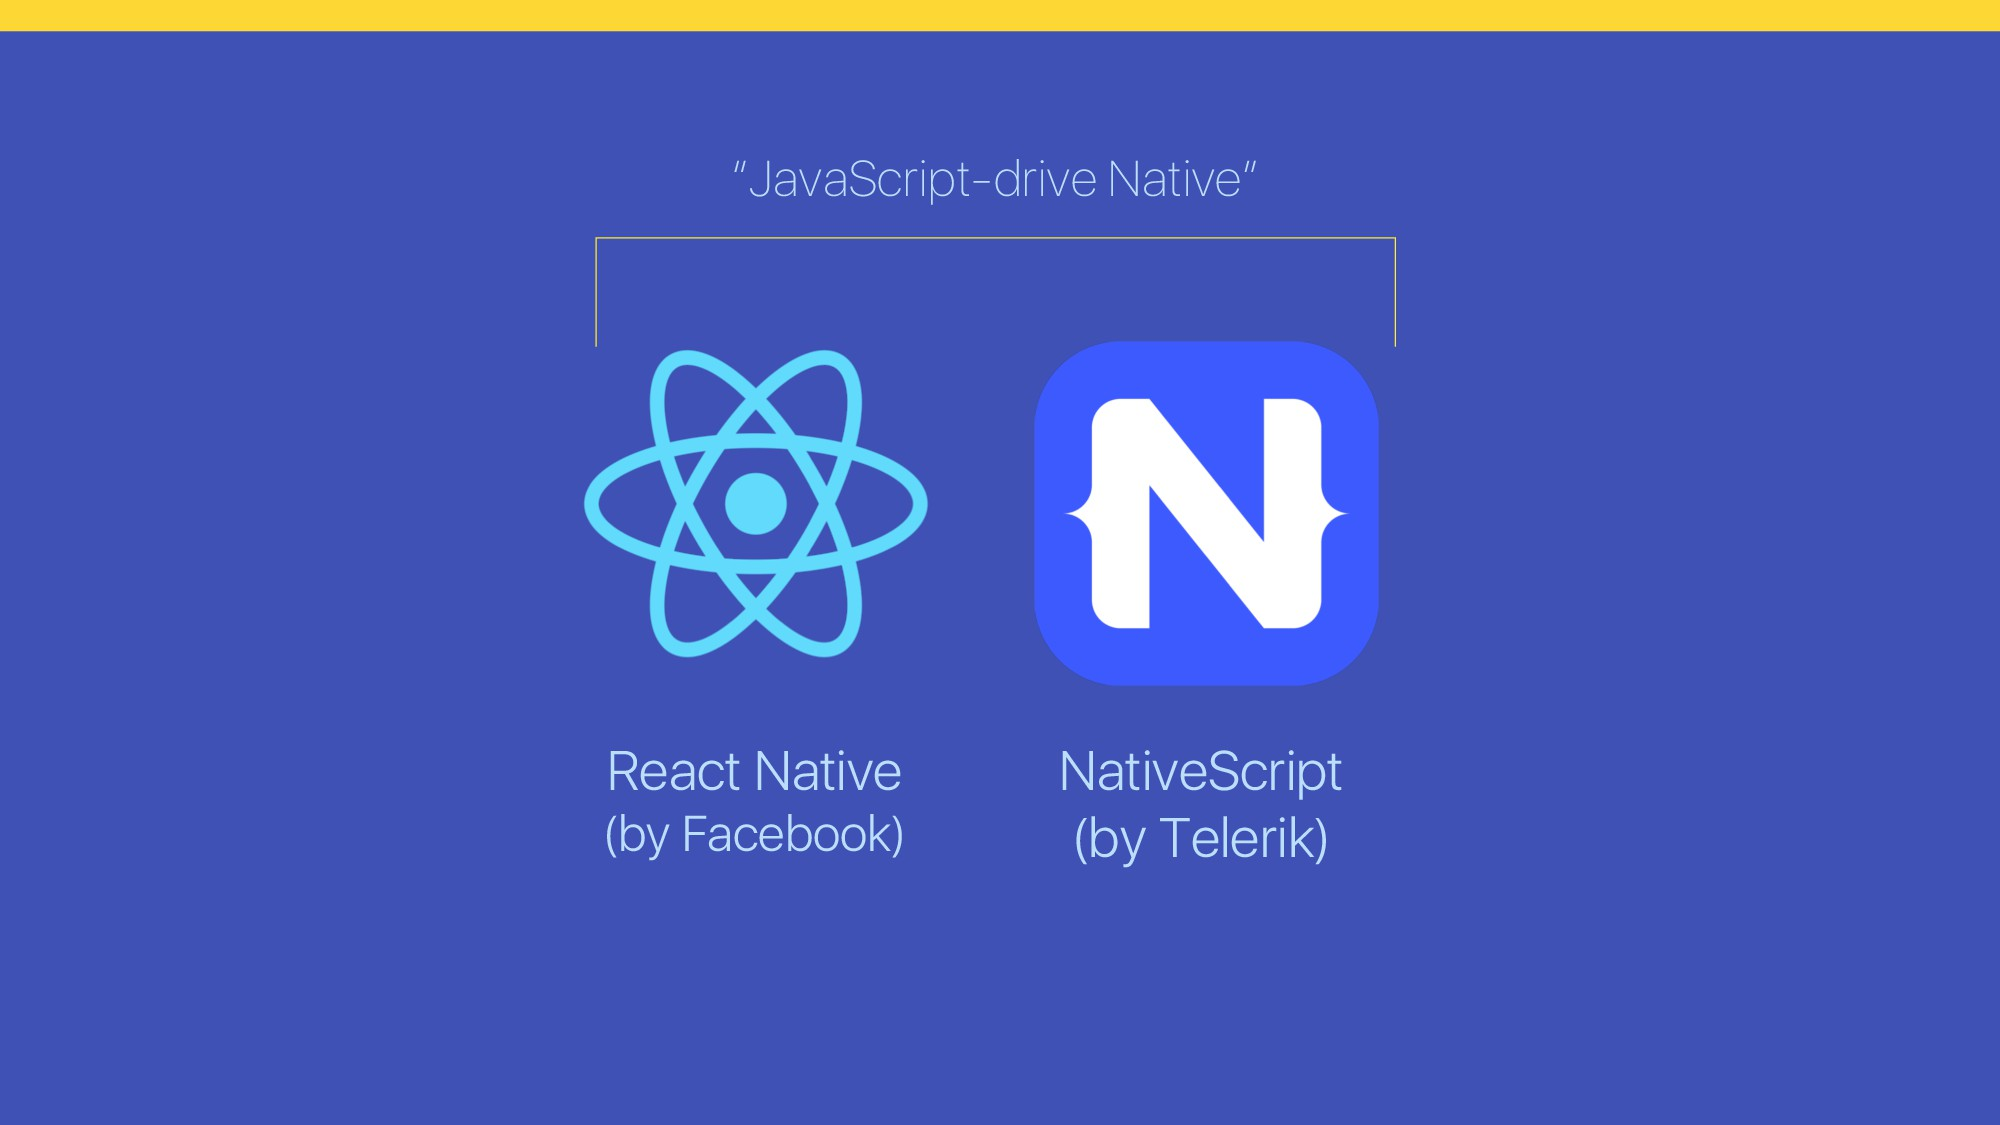 NativeScript (by Telerik) React Native (by Face...